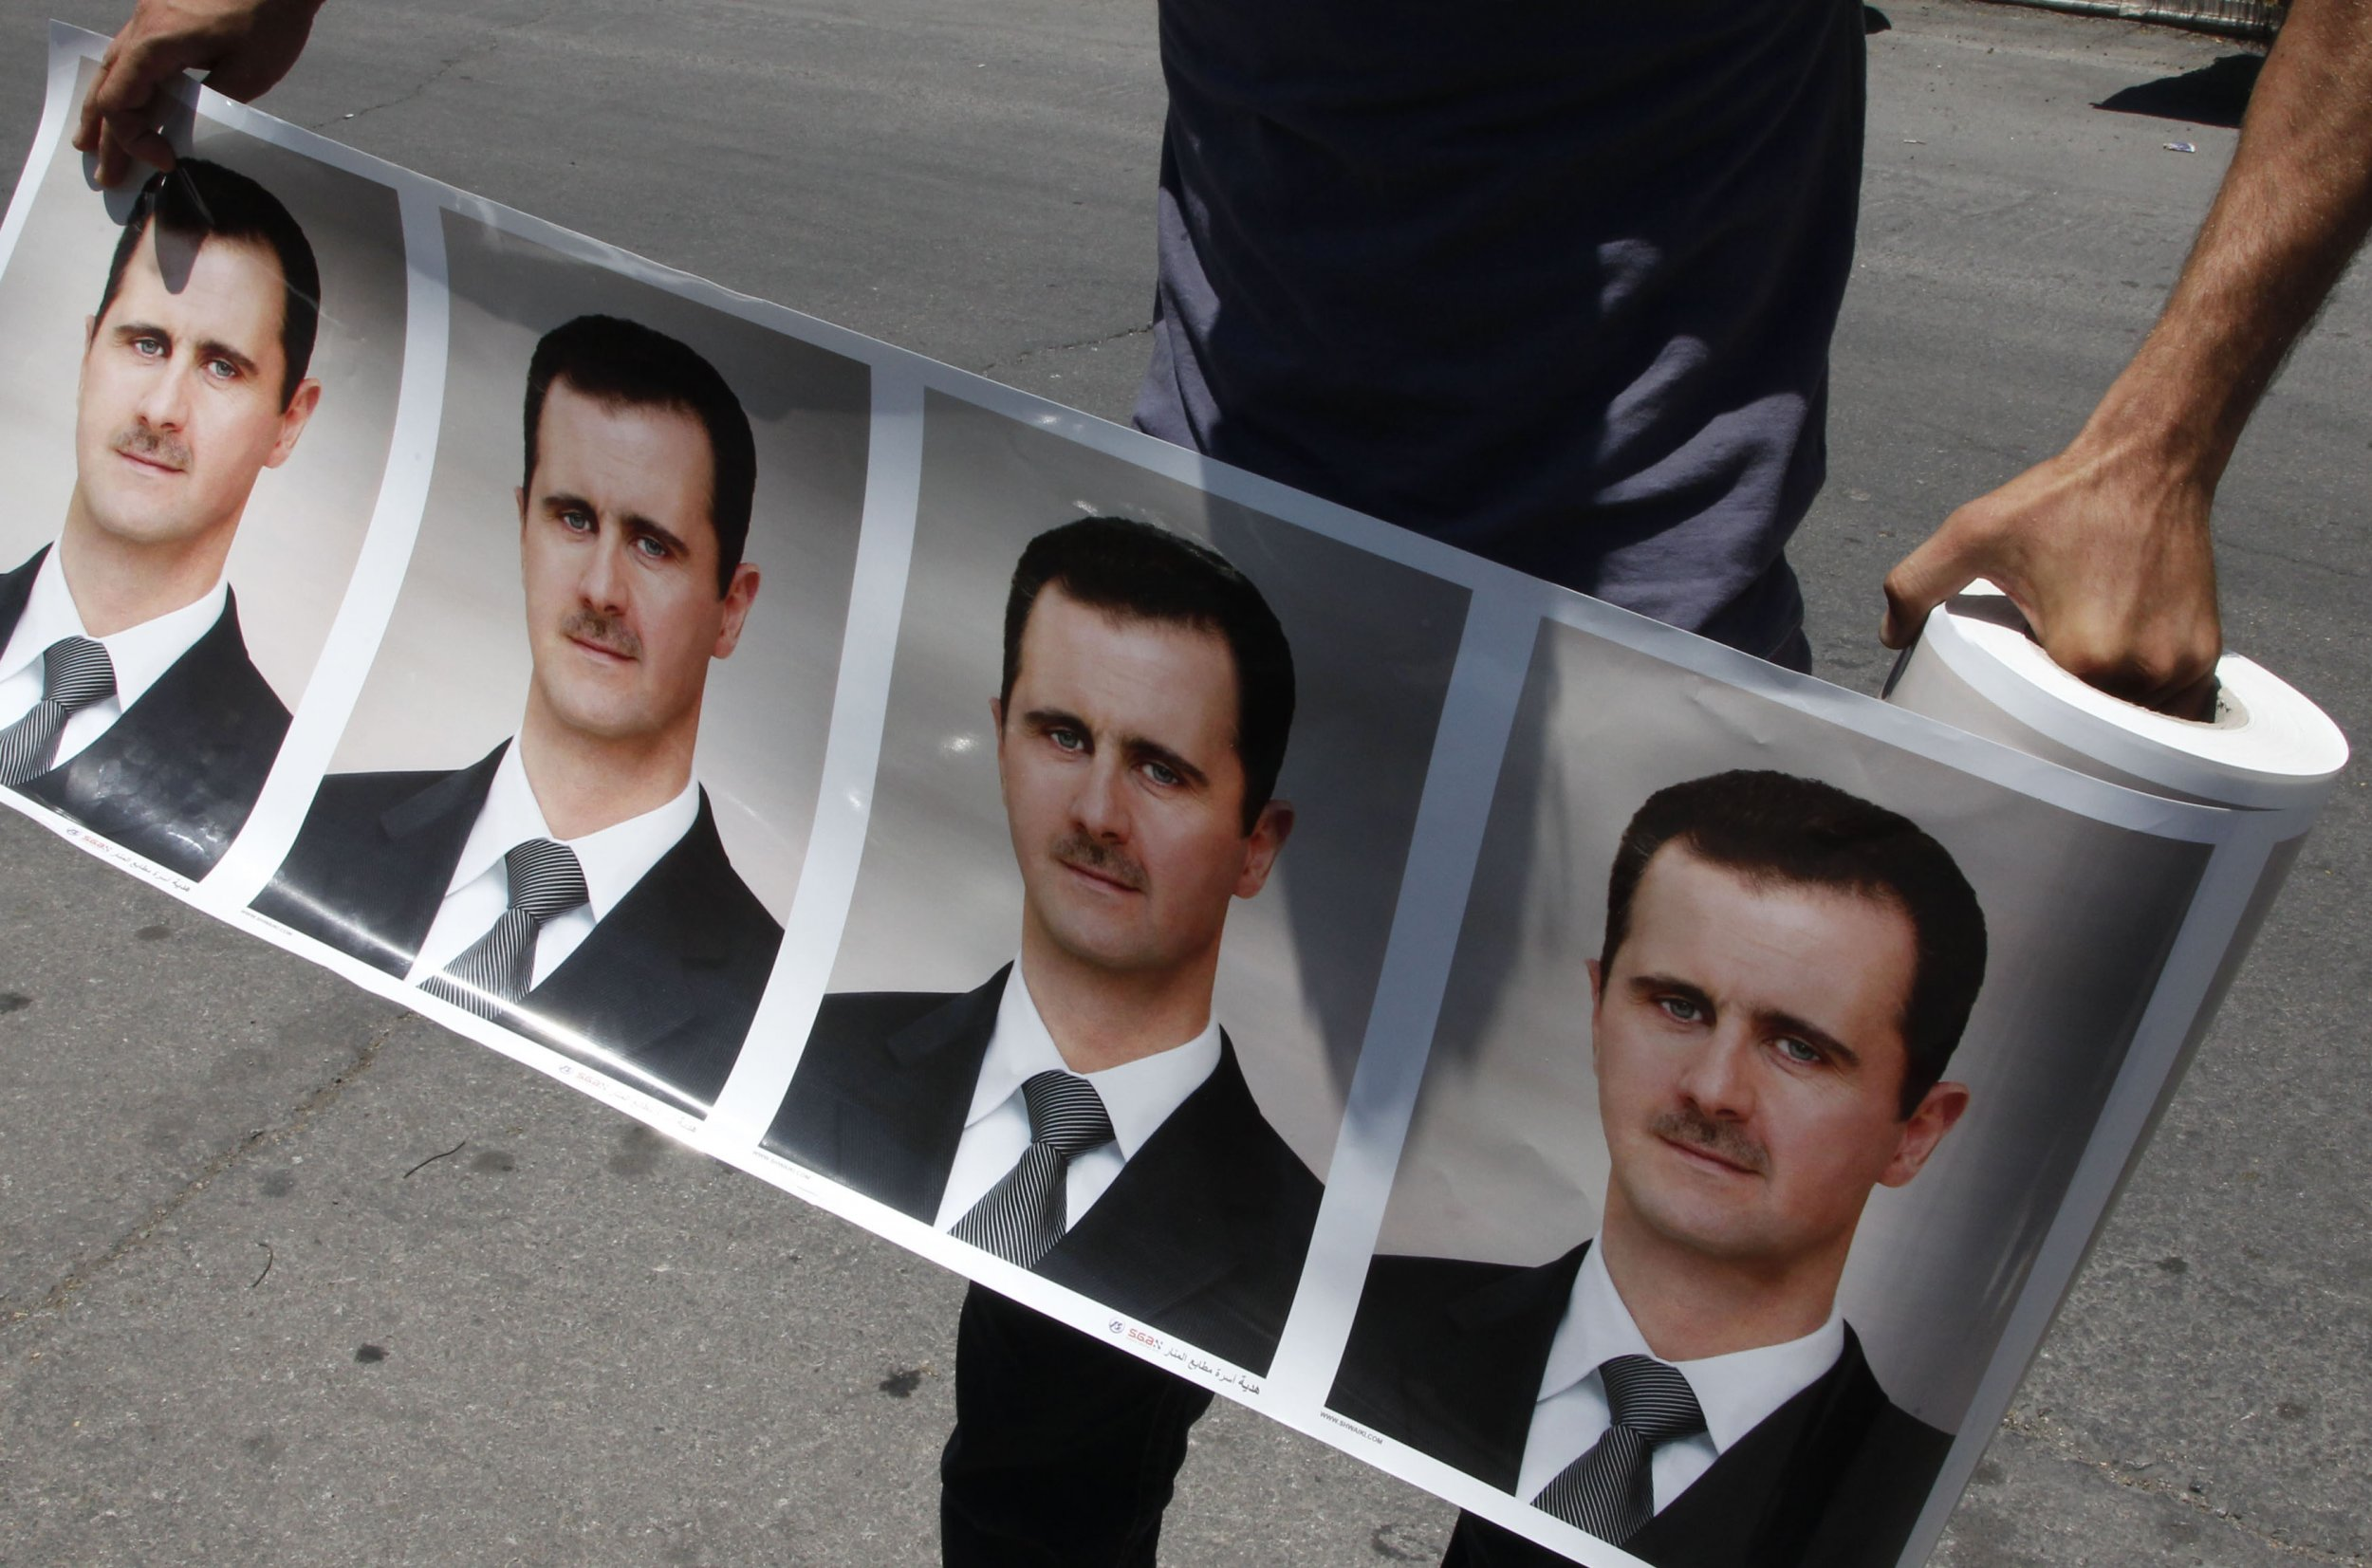 Assad photos